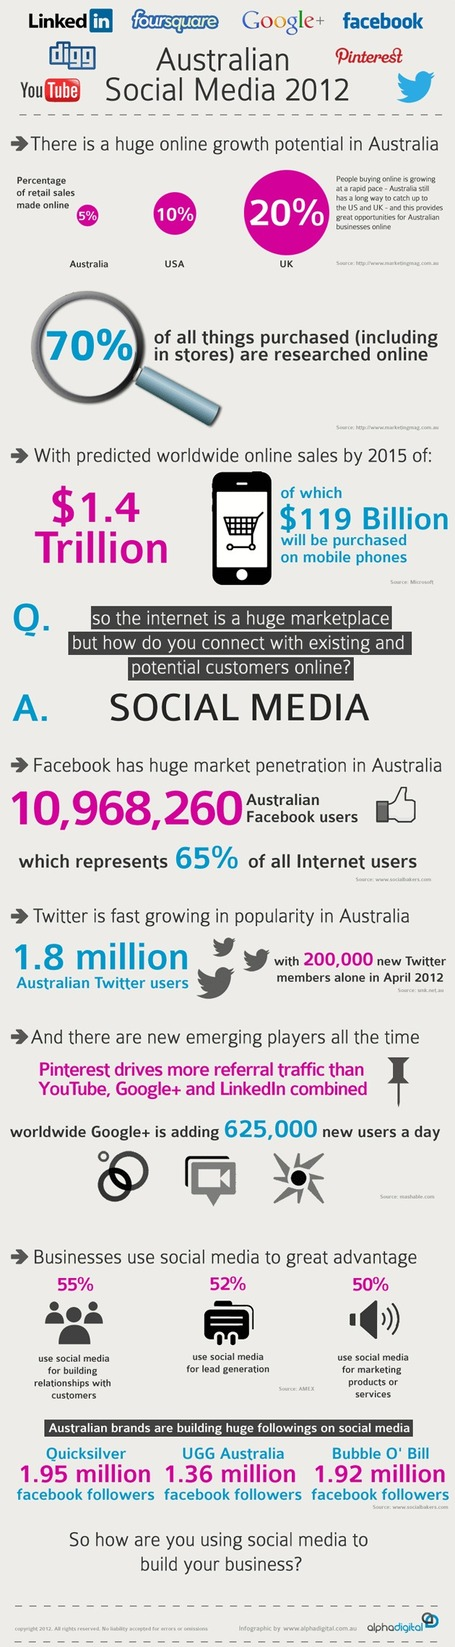 Social Media In Australia 2012 | #Infographic | Social-Business-Marketing | Scoop.it